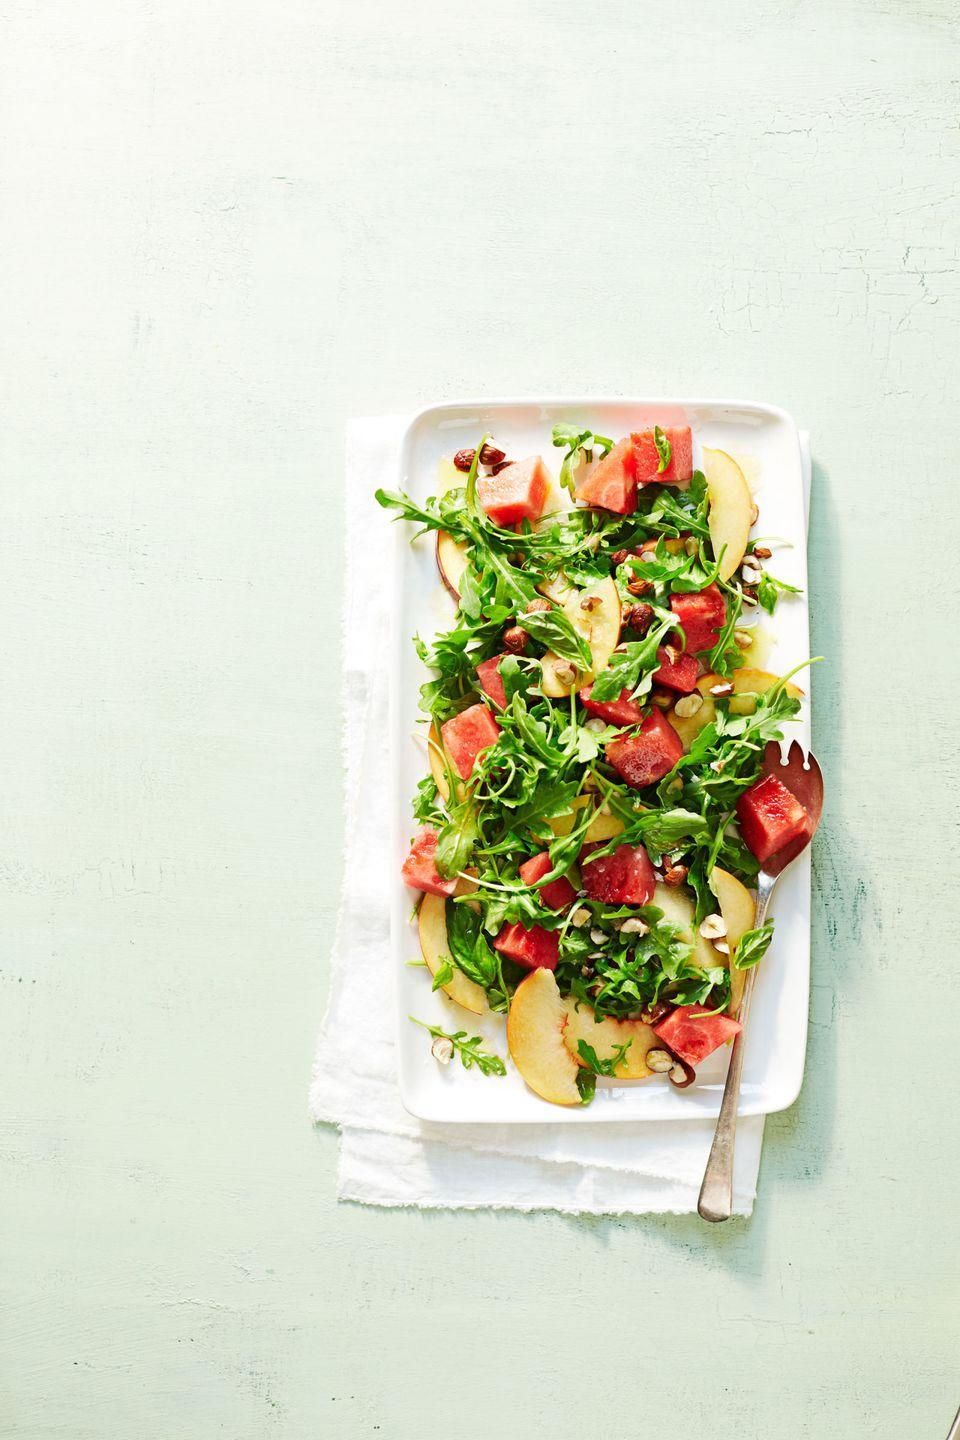 """<p>With a super simple dressing —just olive oil, salt, and red wine vinegar—the best-of-summer produce r<em>eally </em>shines. (Oh hello, watermelon, peaches and basil! ) </p><p><em><a href=""""https://www.goodhousekeeping.com/food-recipes/g1157/watermelon-recipes/?slide=3"""" rel=""""nofollow noopener"""" target=""""_blank"""" data-ylk=""""slk:Get the recipe for Watermelon-Arugula Salad »"""" class=""""link rapid-noclick-resp"""">Get the recipe for Watermelon-Arugula Salad »</a></em></p>"""